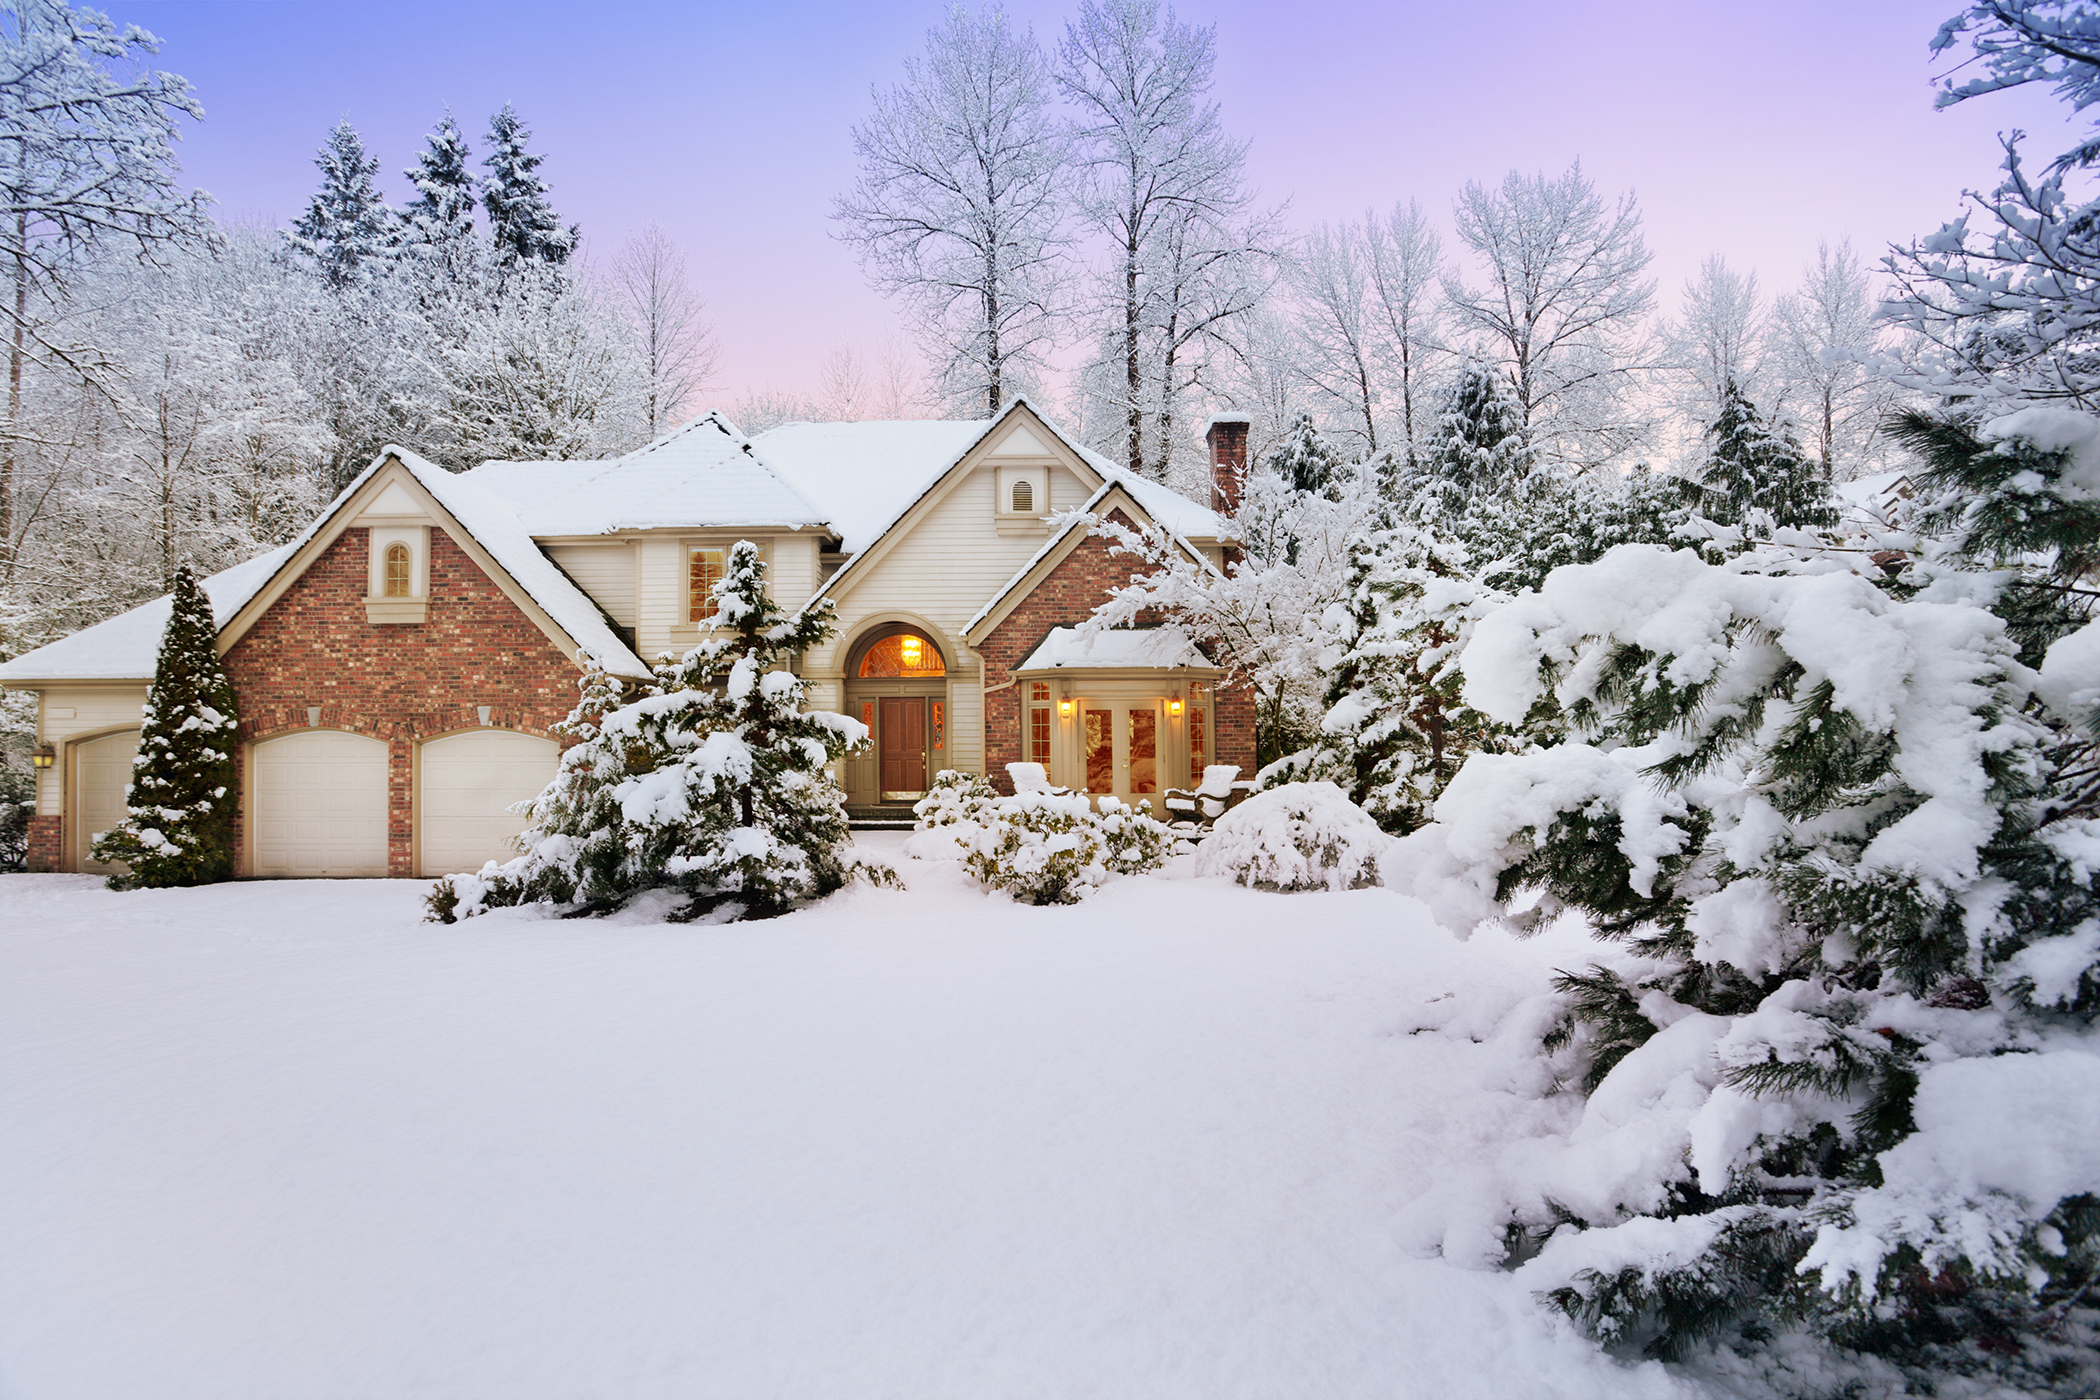 Beautiful, snow-covered home just before sunset